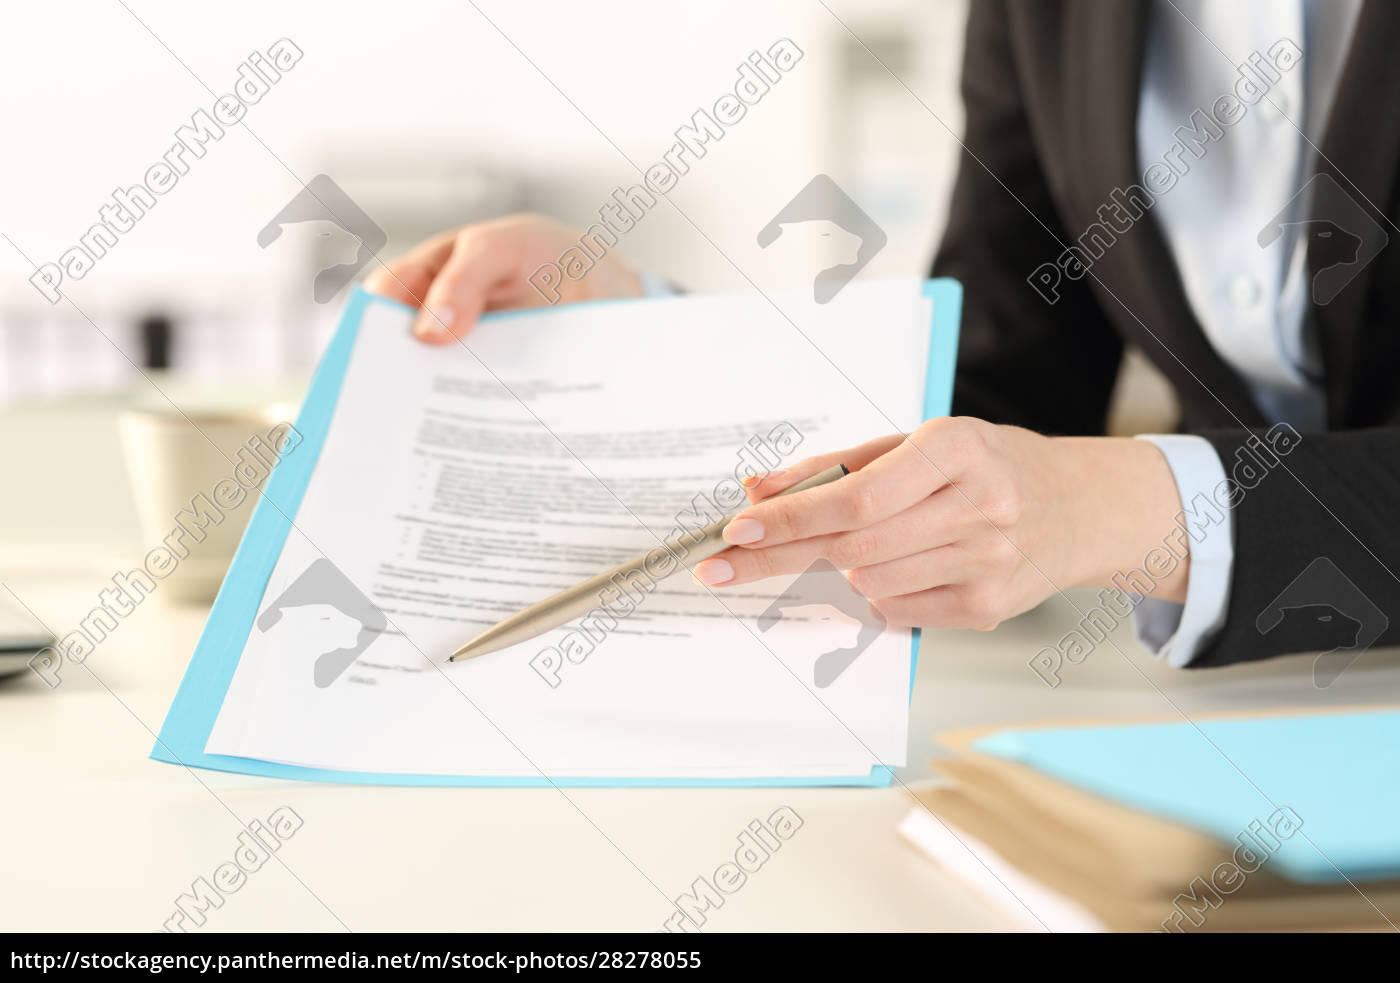 executive, hands, showing, contract, pointing, signature - 28278055